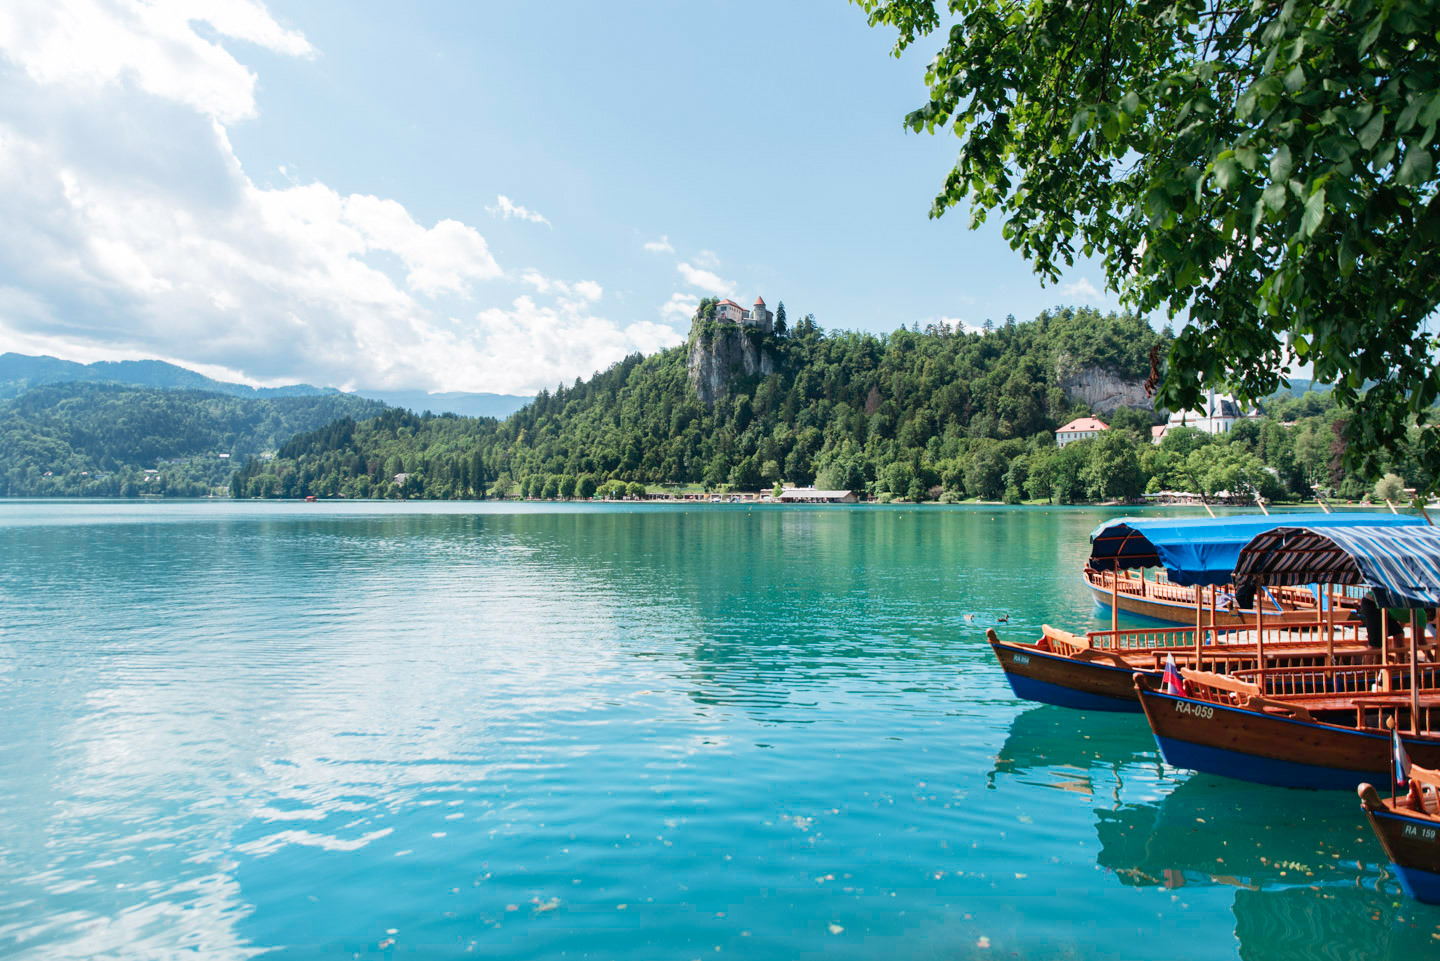 Blog-Mode-And-The-City-Lifestyle-Roadtrip-Europe-Slovenie-Ljubljana-Bled-18